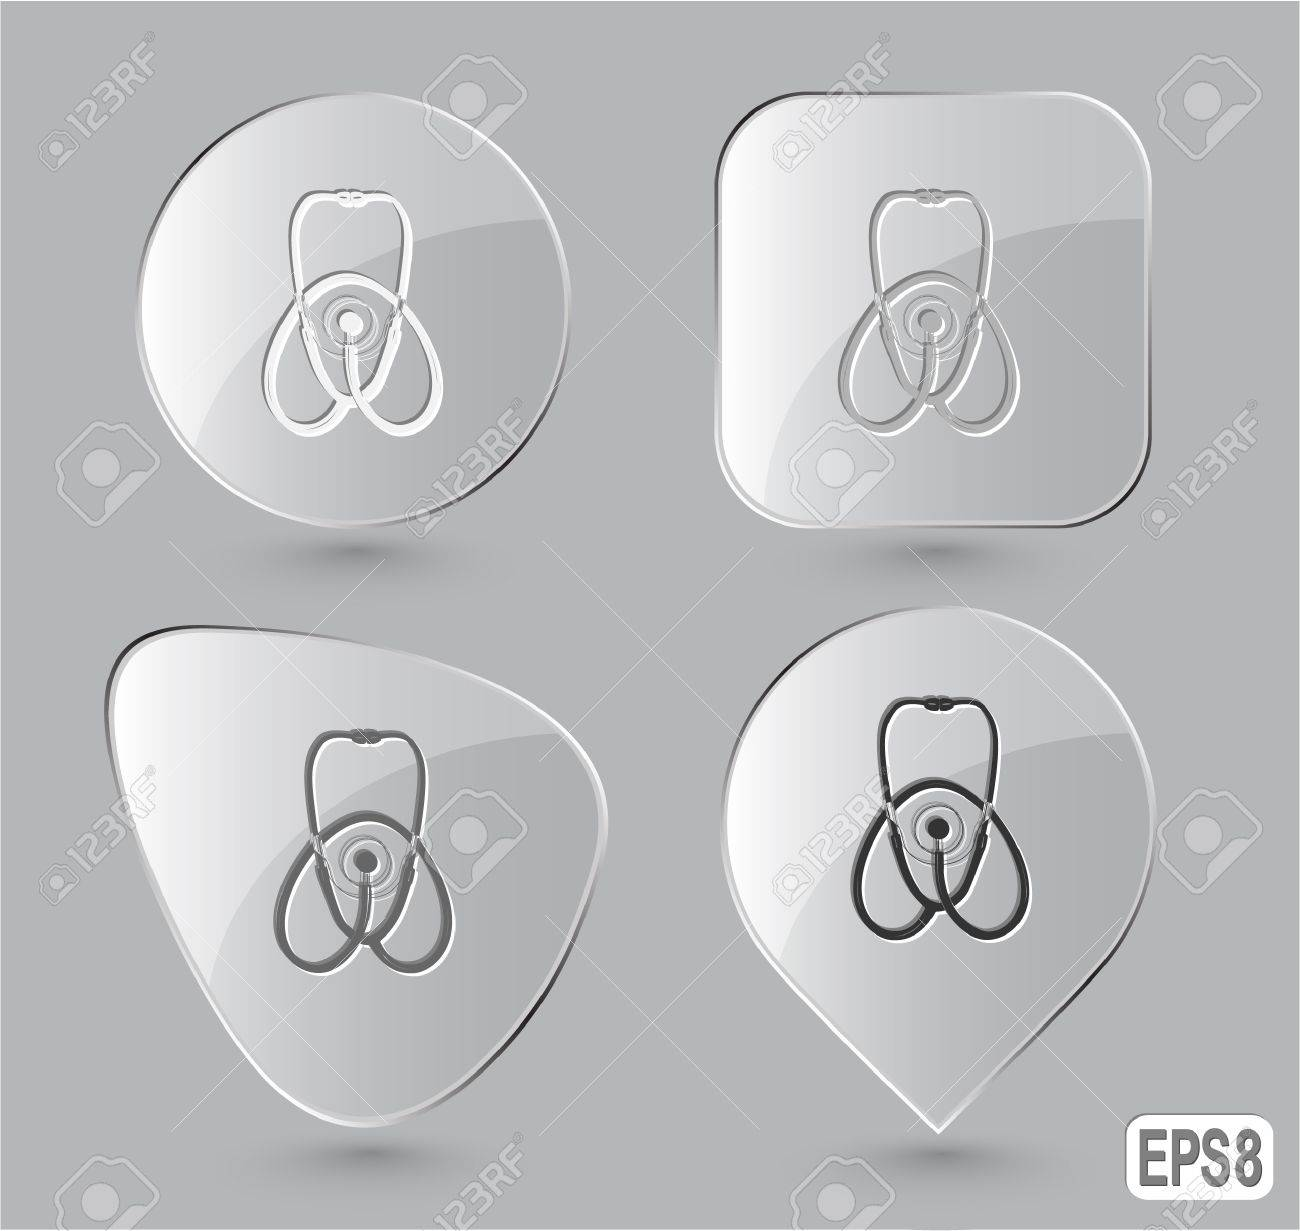 Stethoscope. Glass buttons. Stock Photo - 16804754